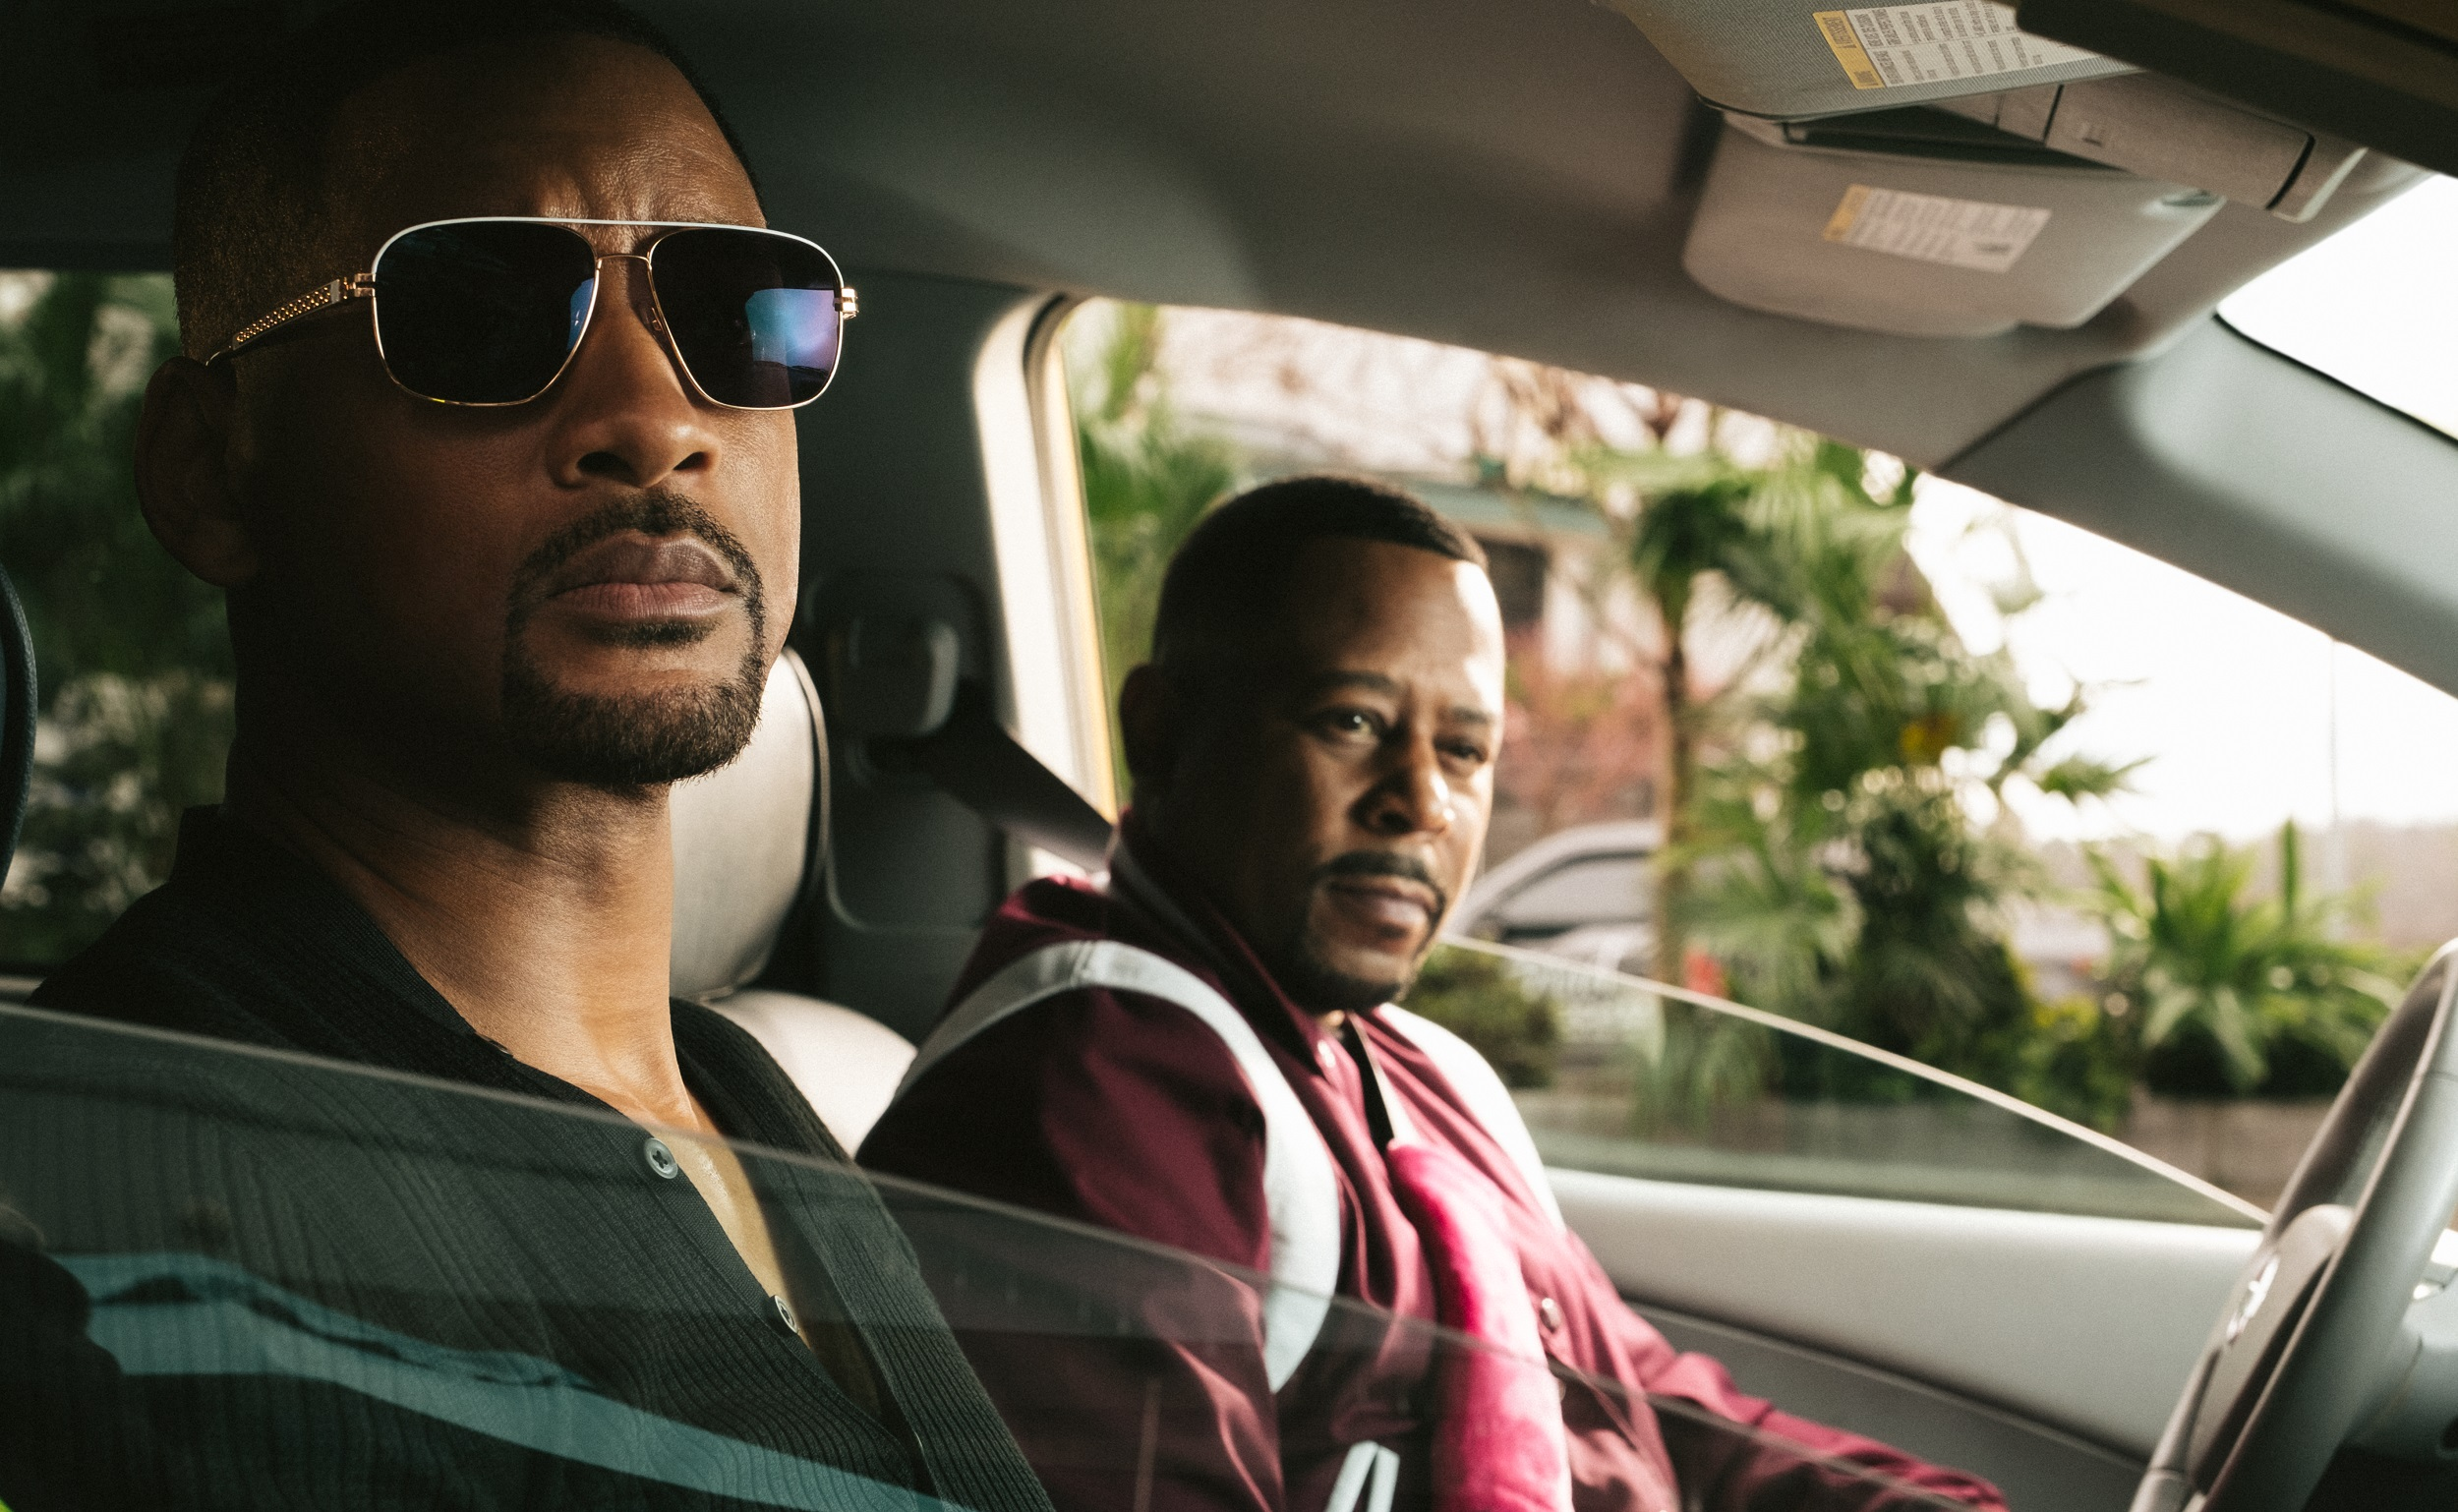 Seen 'Bad Boys For Life' Yet? You Better Hurry, 'Bad Boys 4' Could Be On The Way